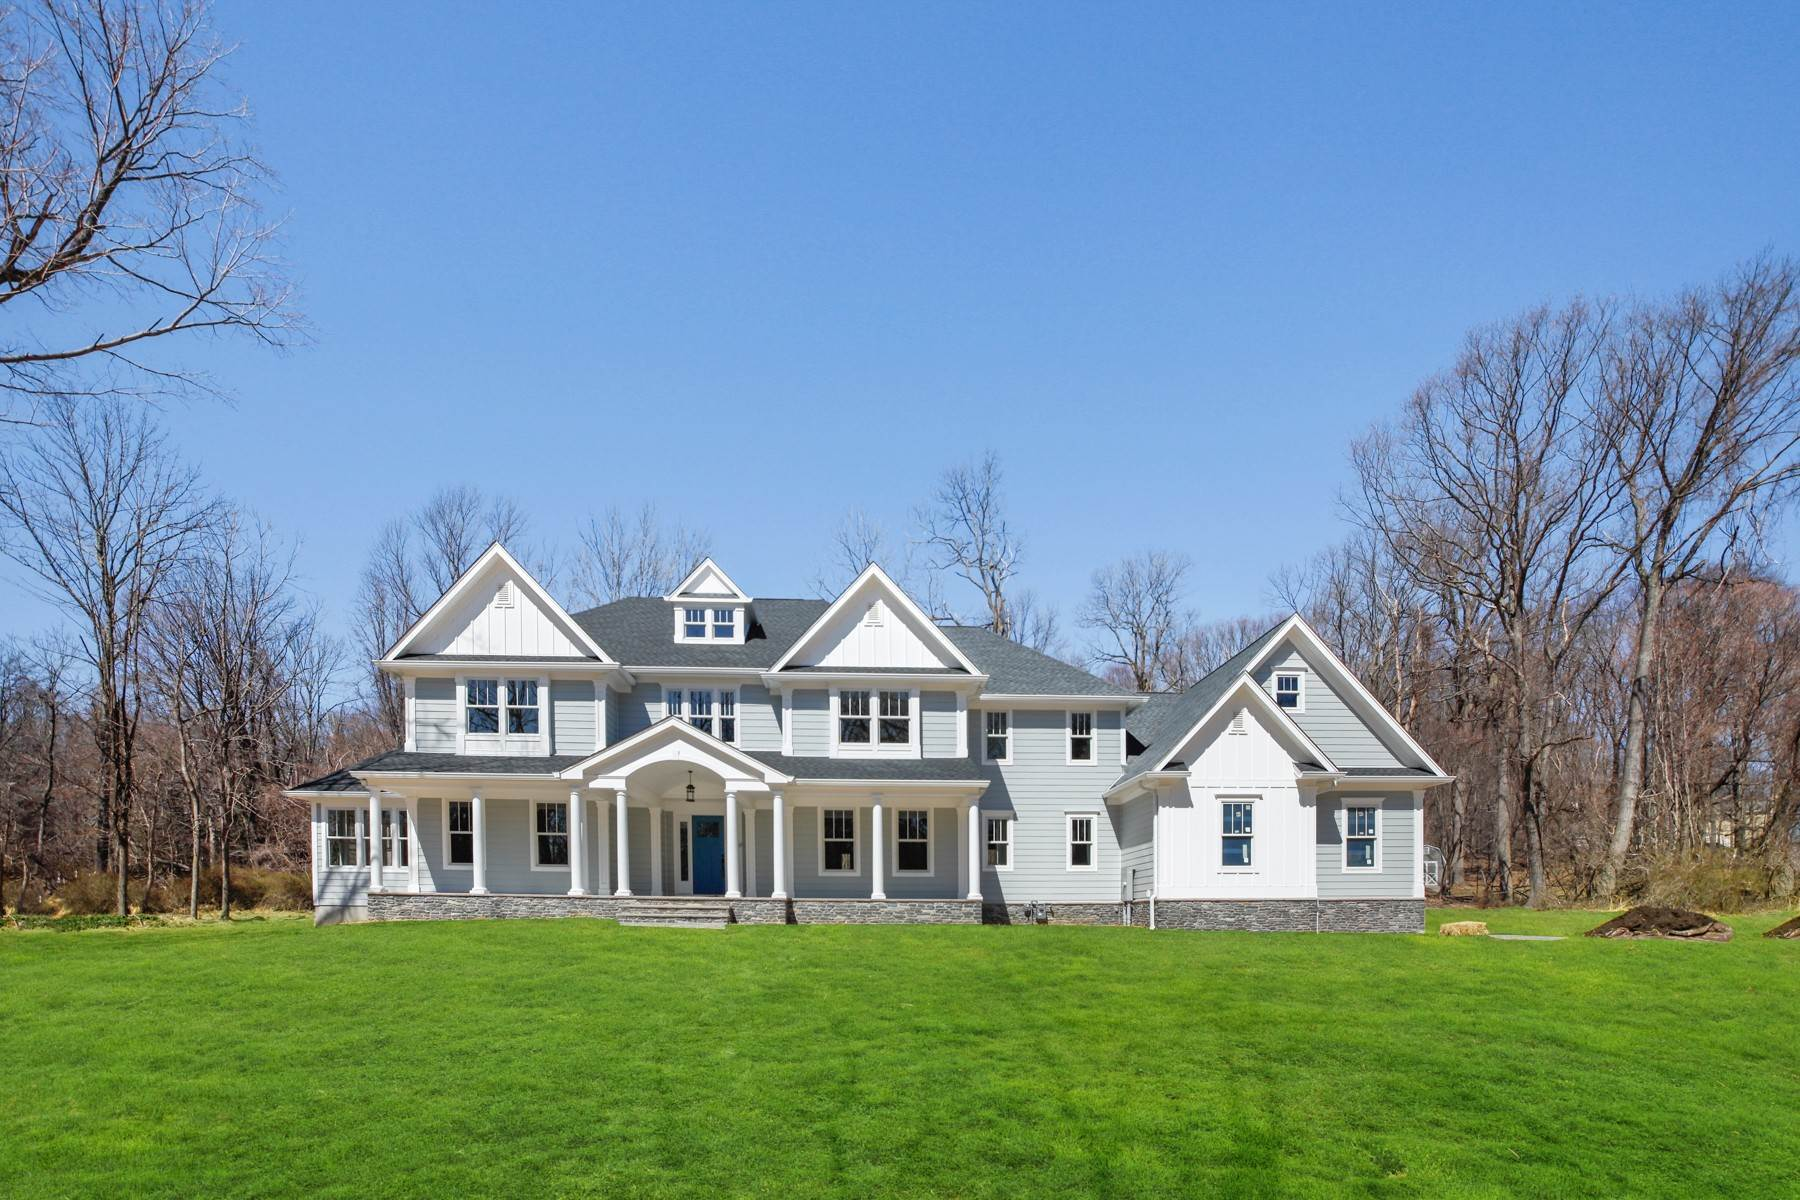 Single Family Homes for Sale at Gorgeous Custom Estate 43 Mount Pleasant Road Mendham, New Jersey 07945 United States